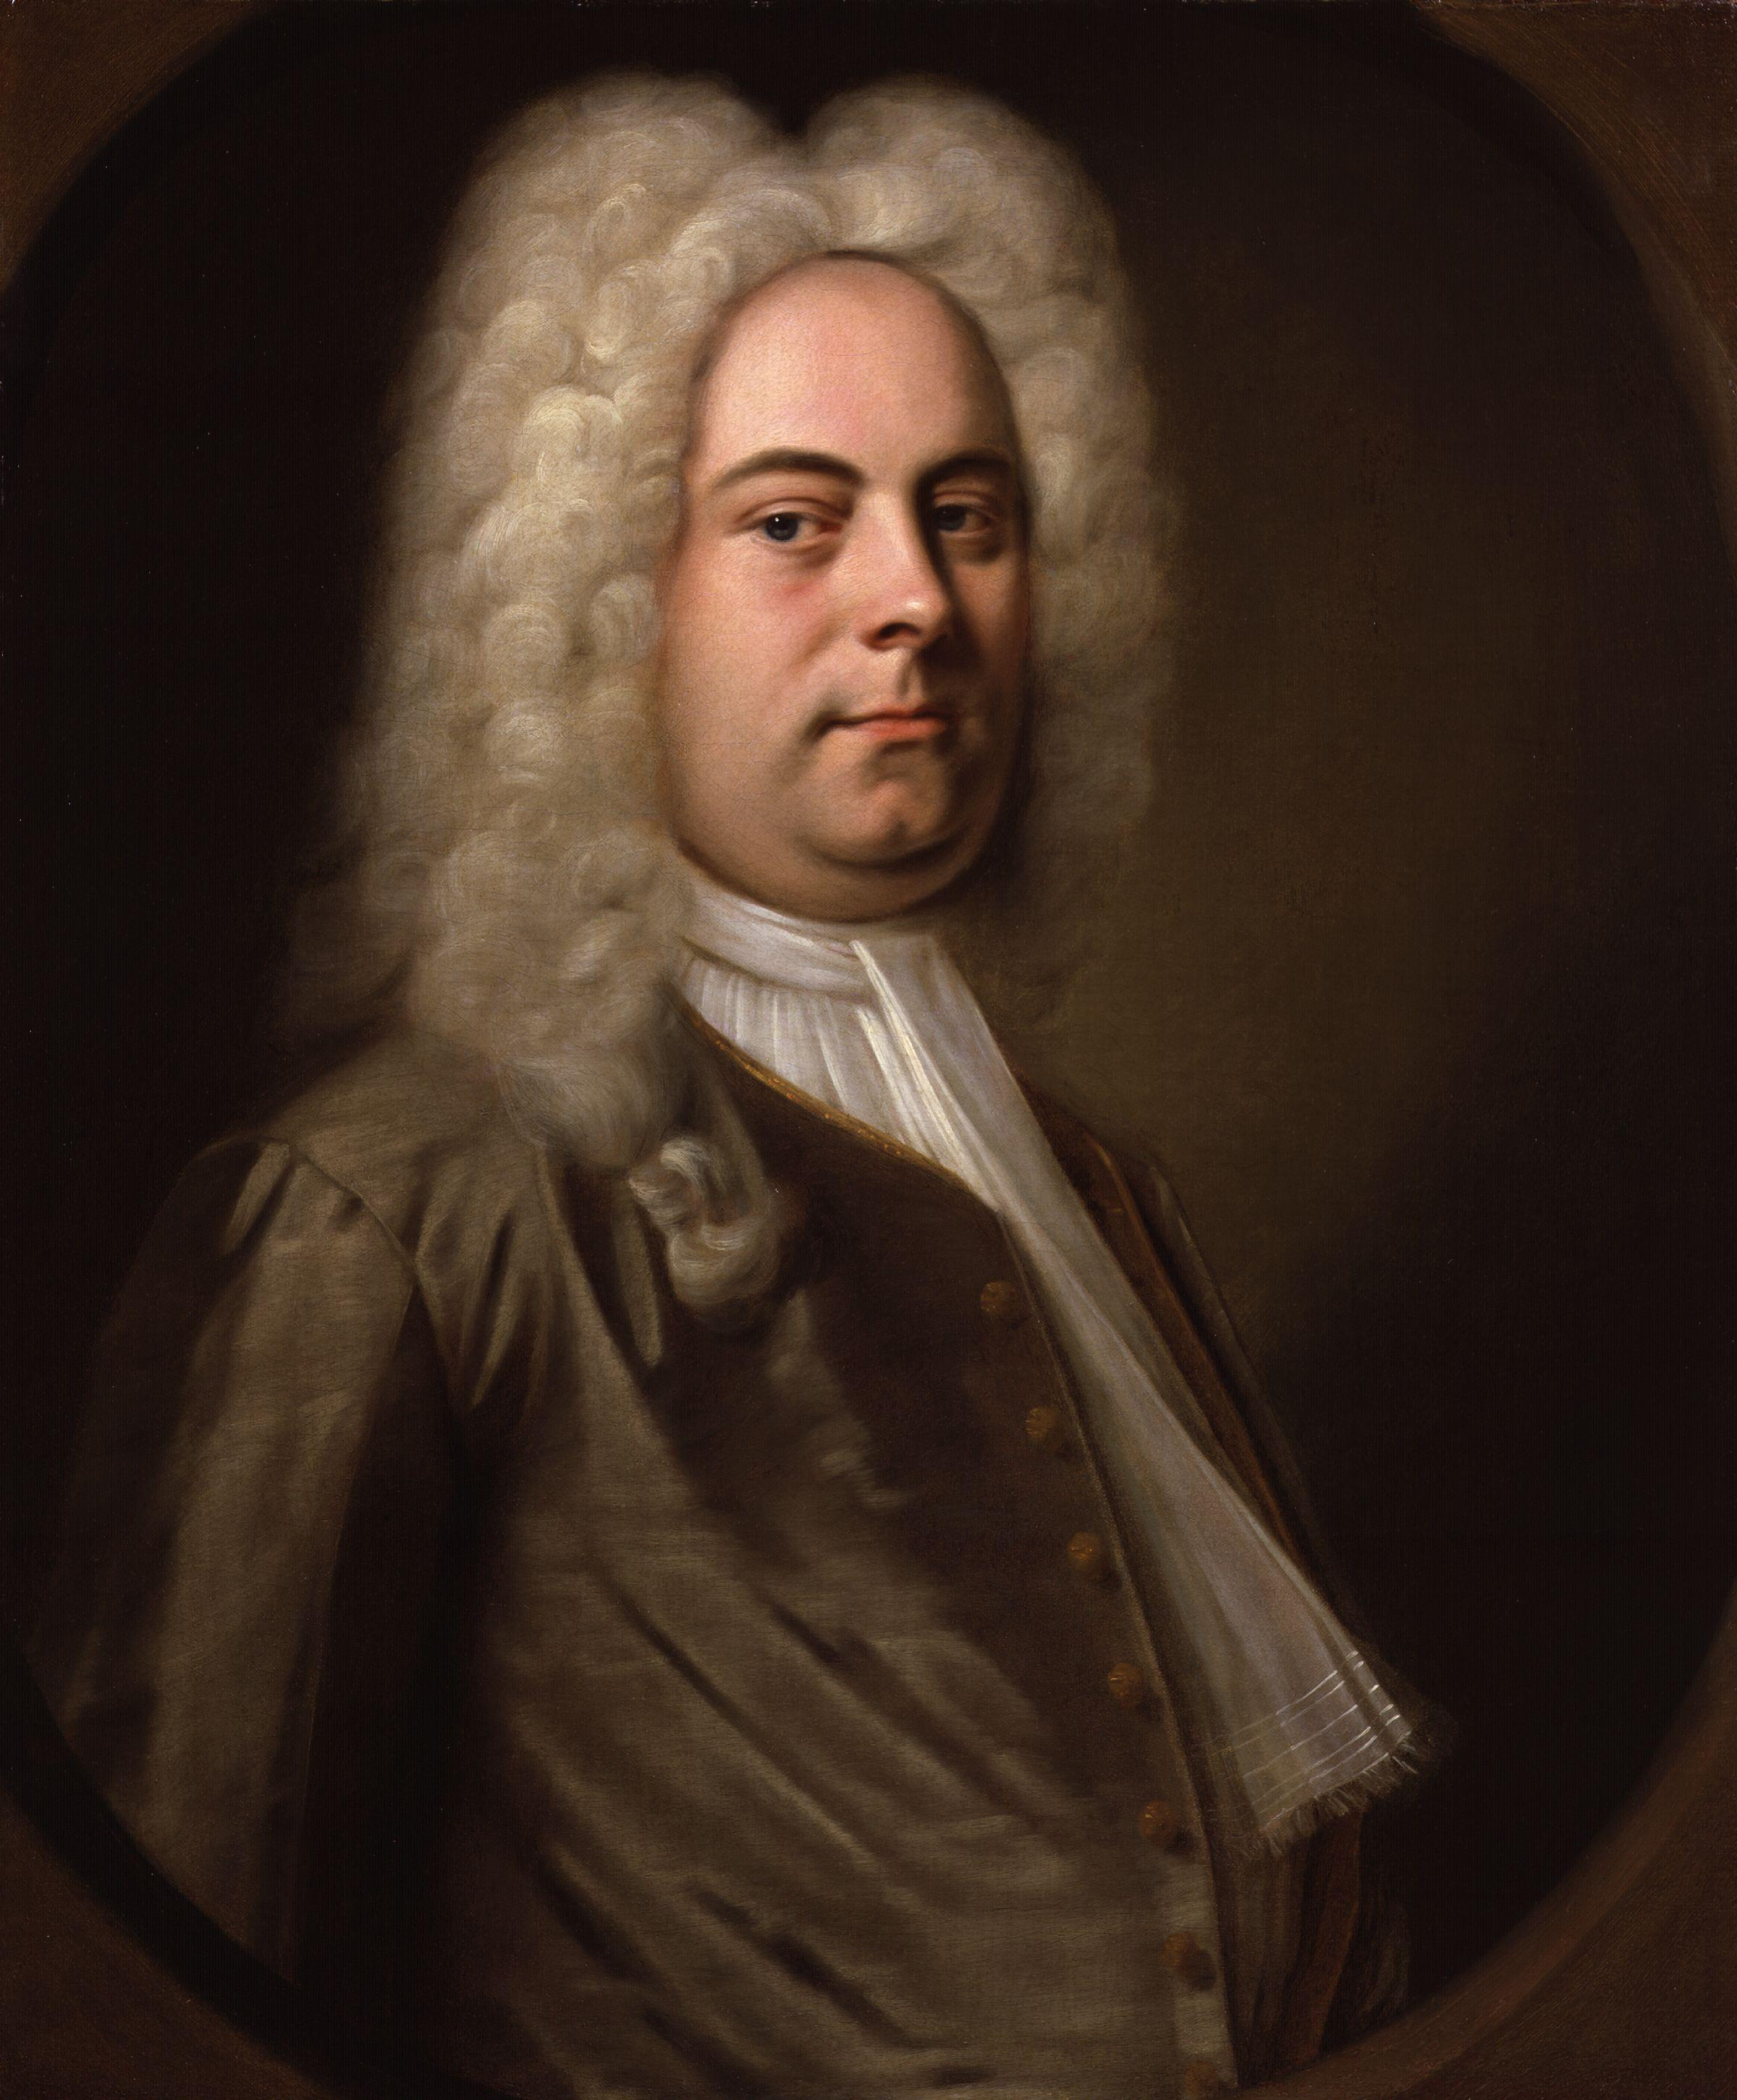 George Frideric Handel, painted by Balthasar Denner